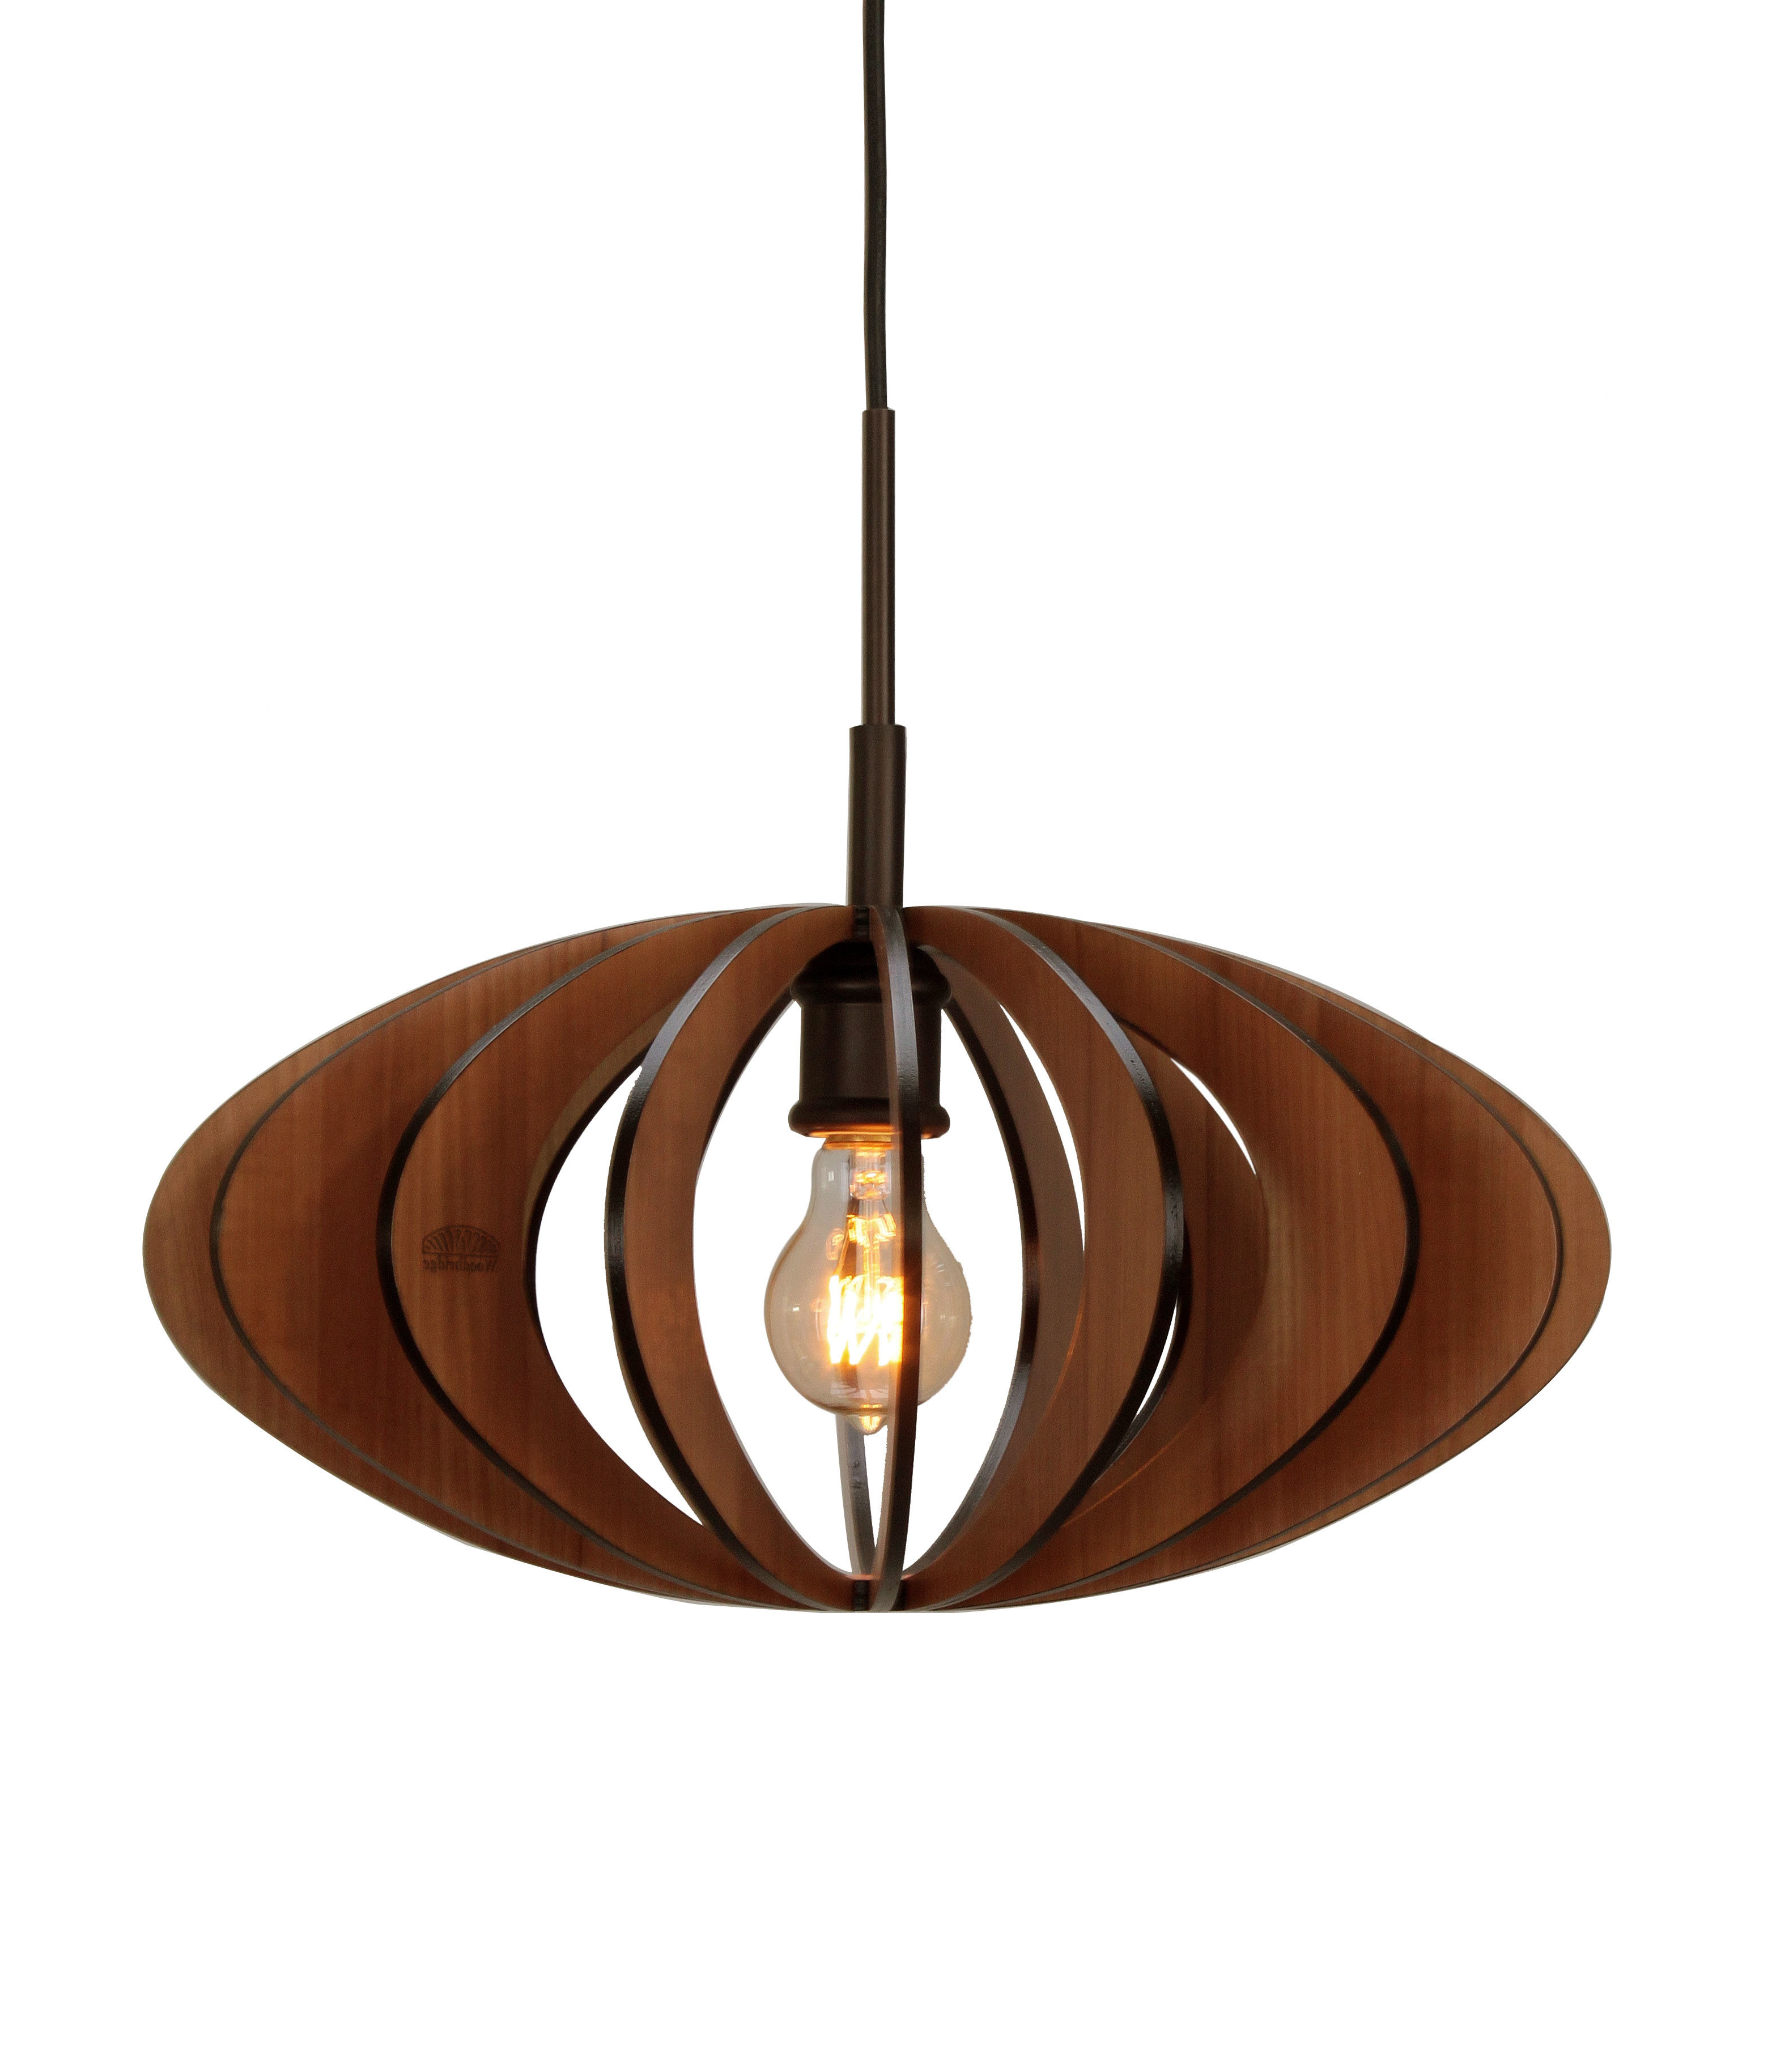 Best And Newest Trent Austin Design Bair 1 Light Single Geometric Pendant Throughout Hydetown 1 Light Single Geometric Pendants (View 12 of 20)